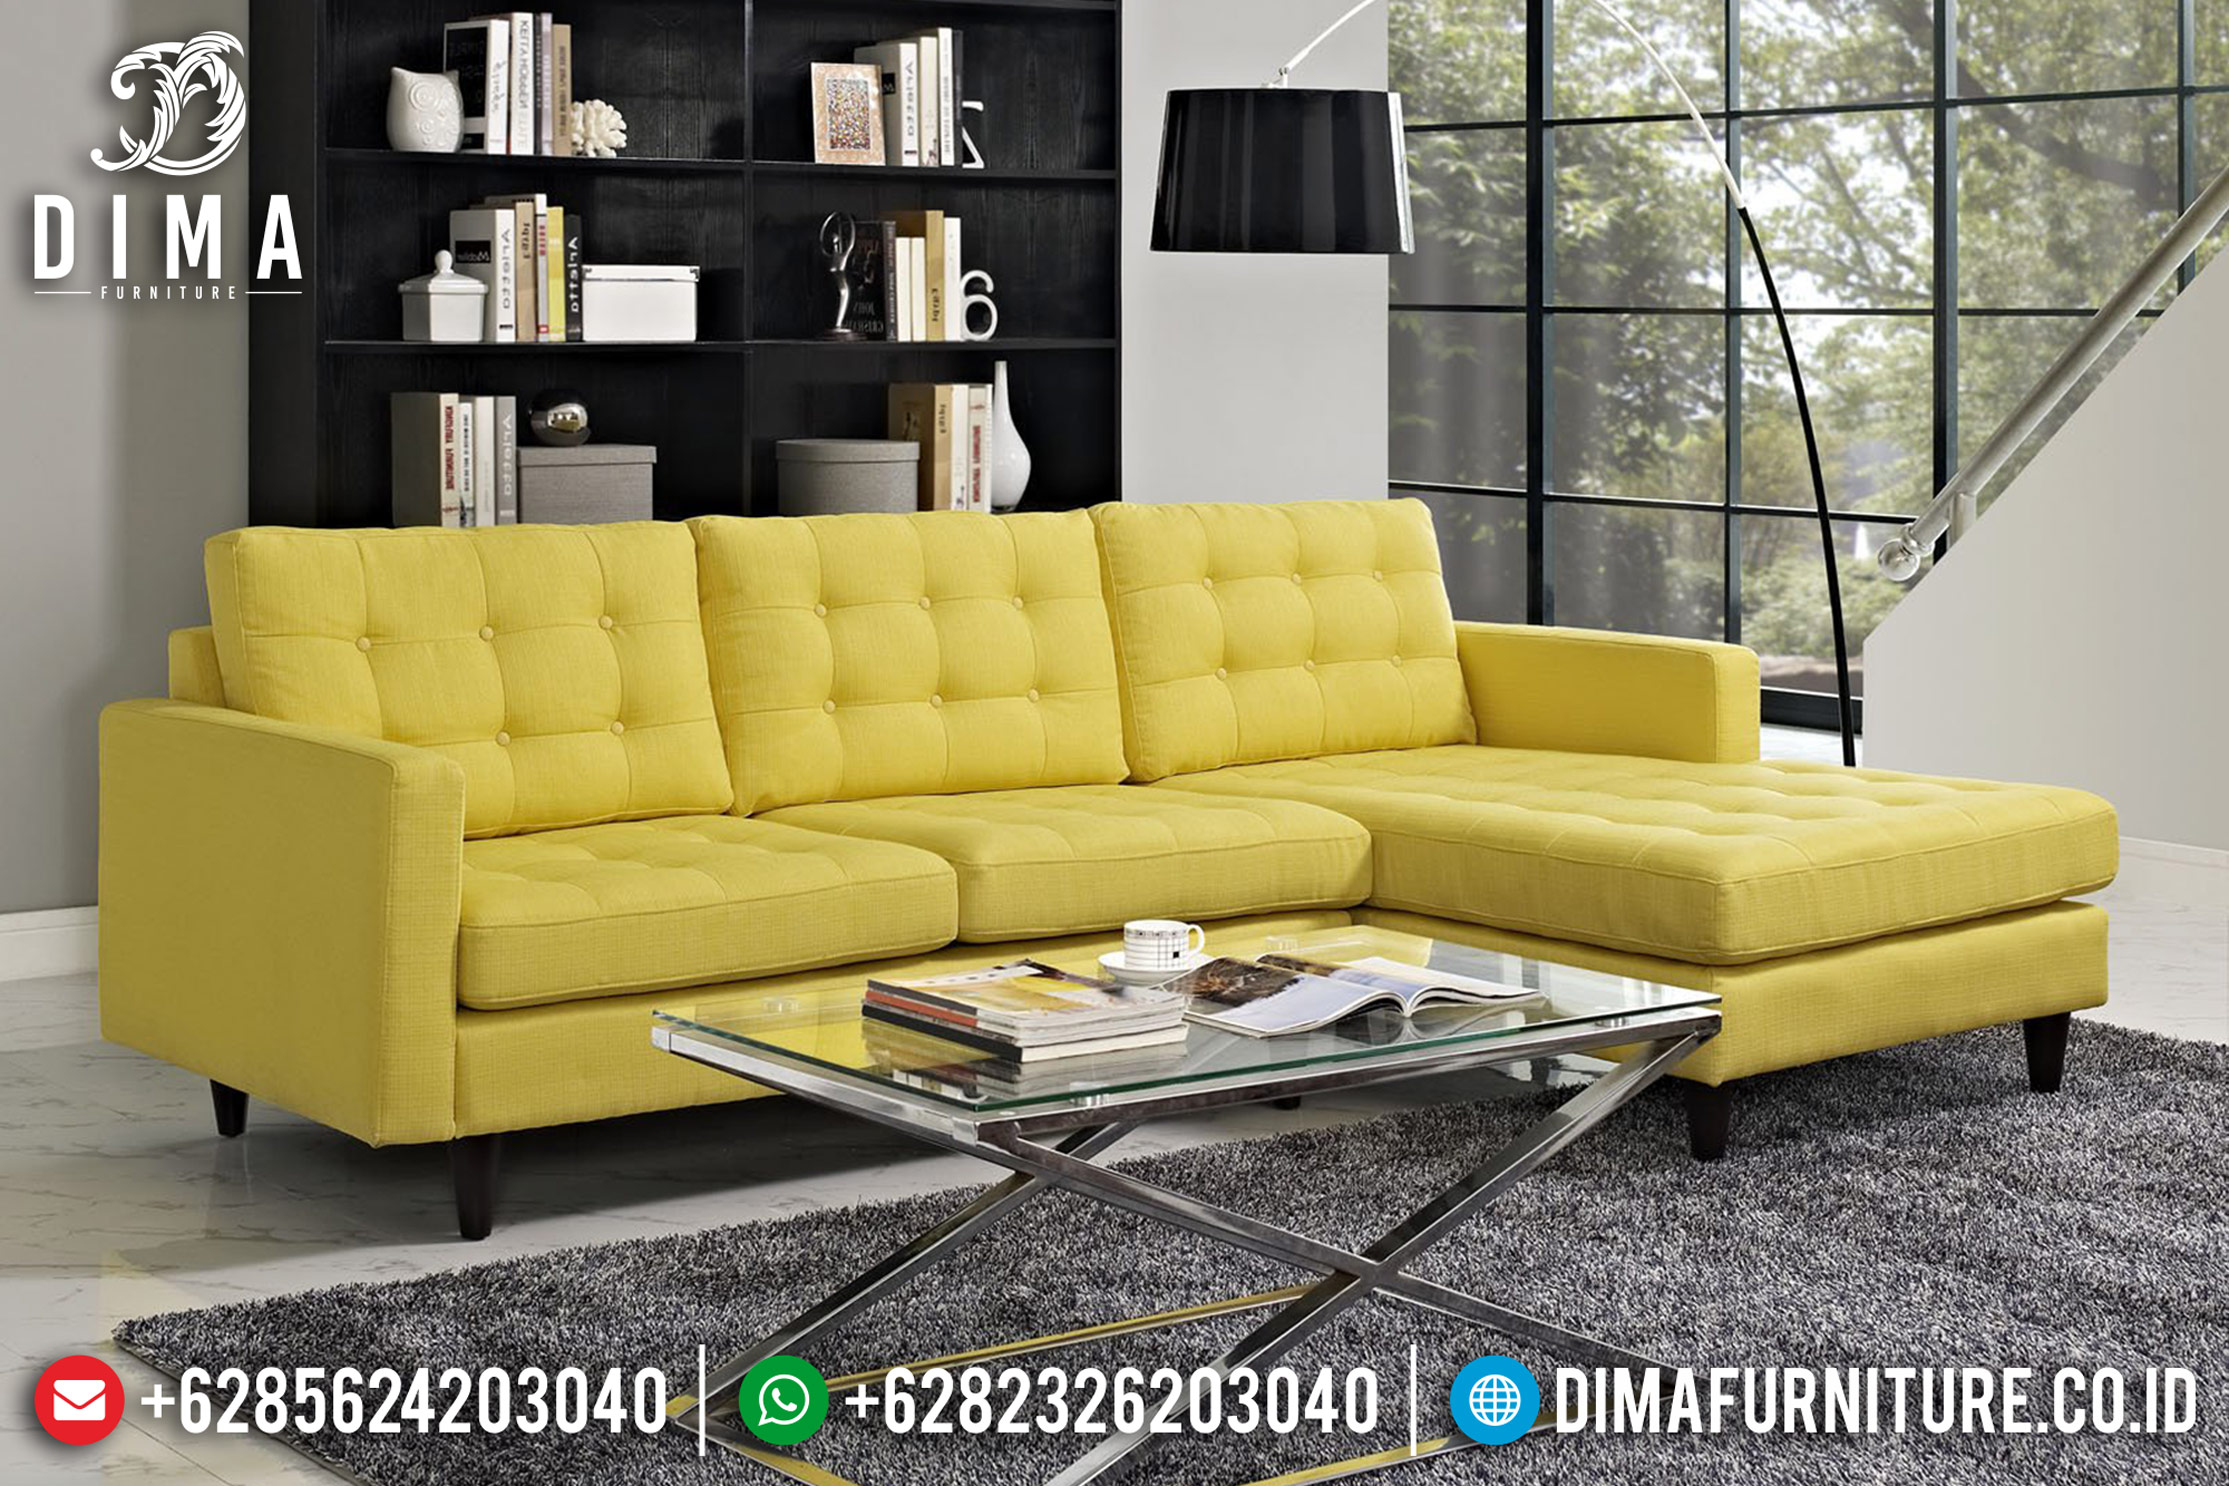 Warren Sectional Kursi Sofa Tamu Jepara Minimalis Terbaru Yellow Fabric DF-0875